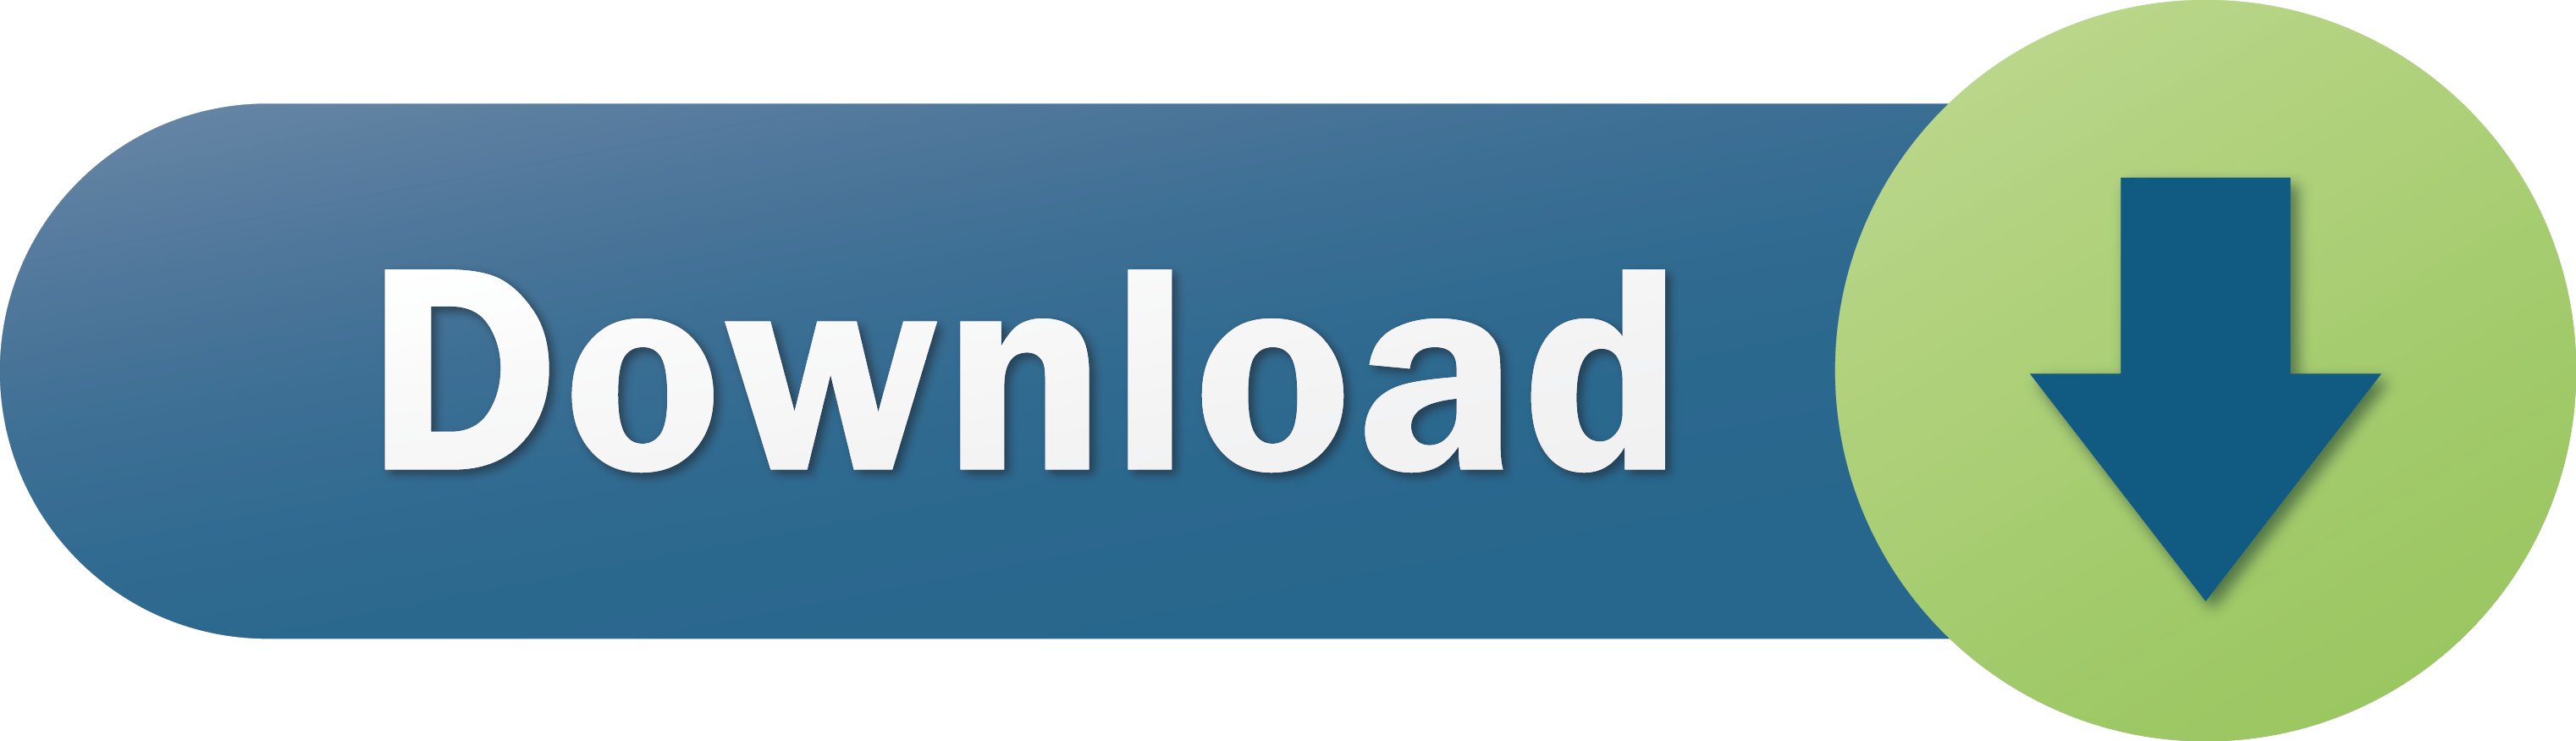 Direct download link Button Software cracking.